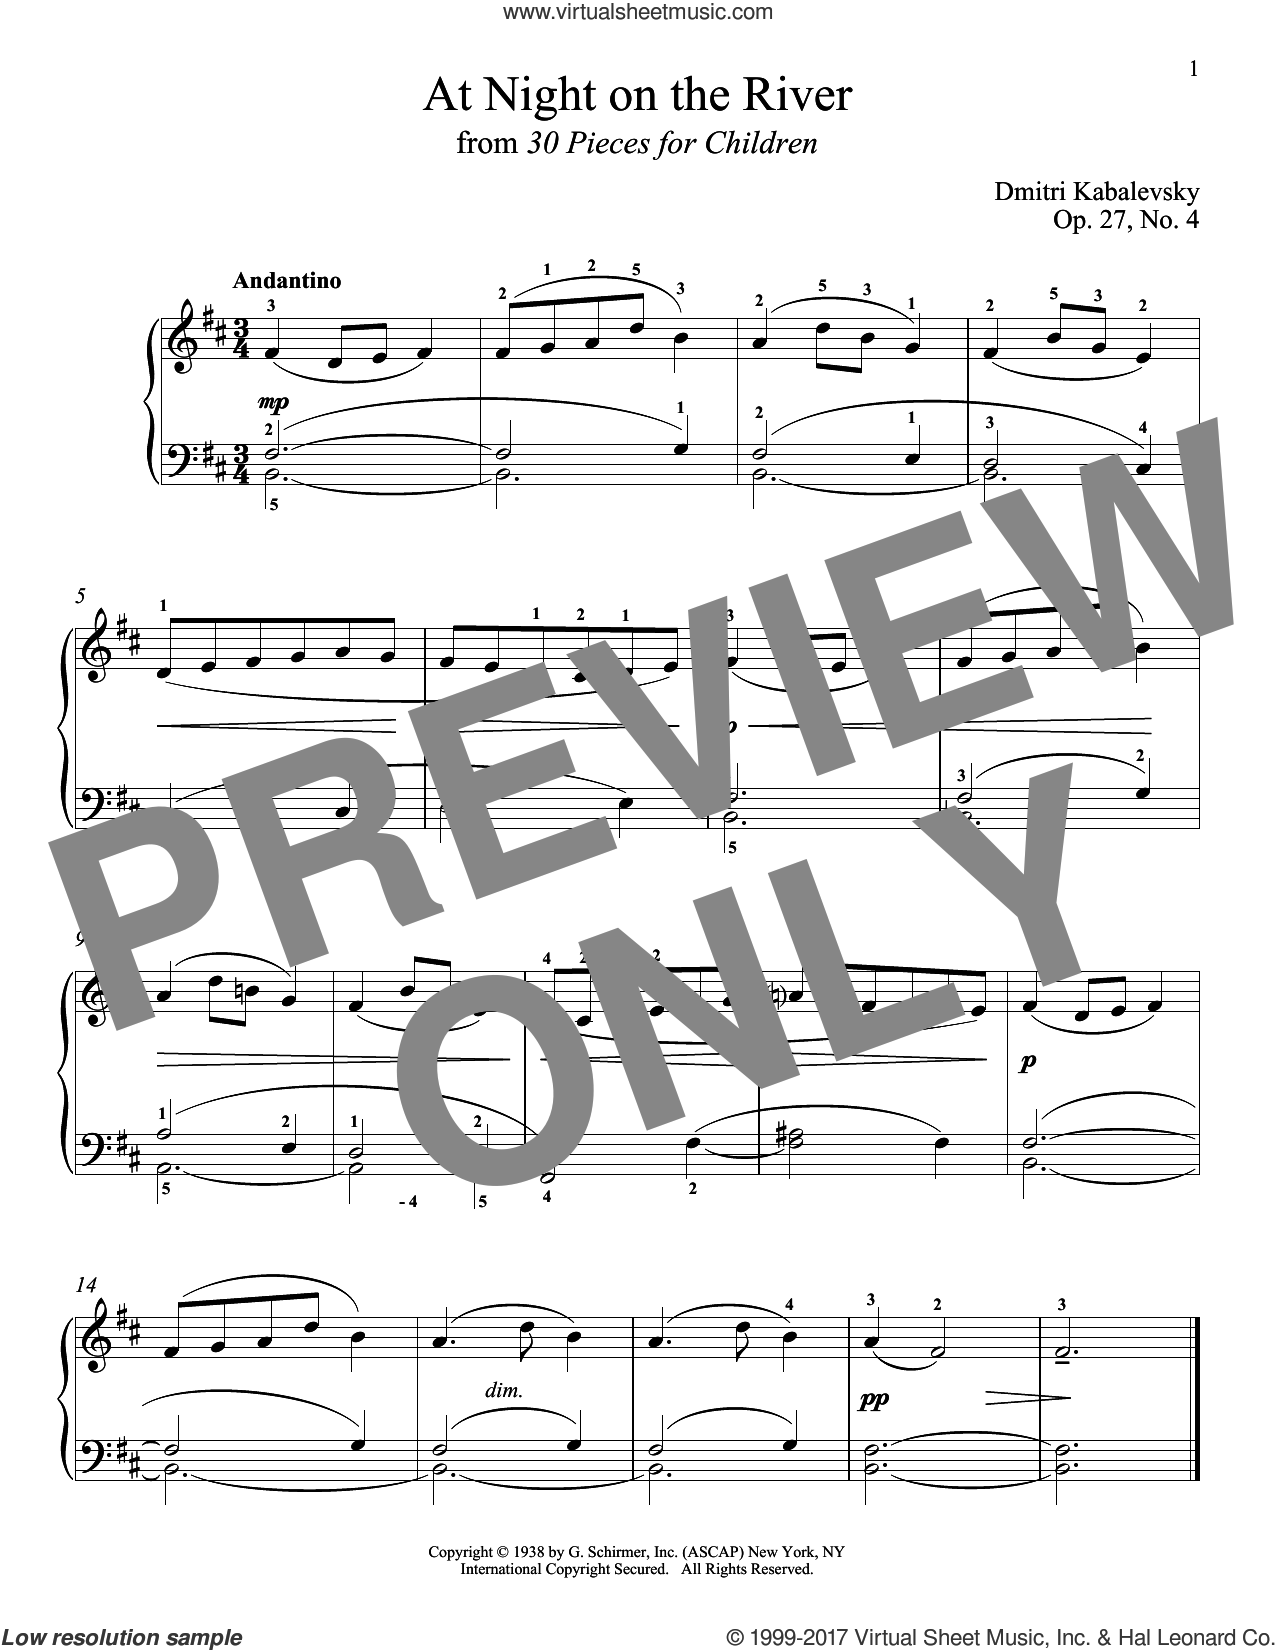 At Night On The River sheet music for piano solo by Dmitri Kabalevsky, Jeffrey Biegel, Margaret Otwell and Richard Walters, classical score, intermediate skill level